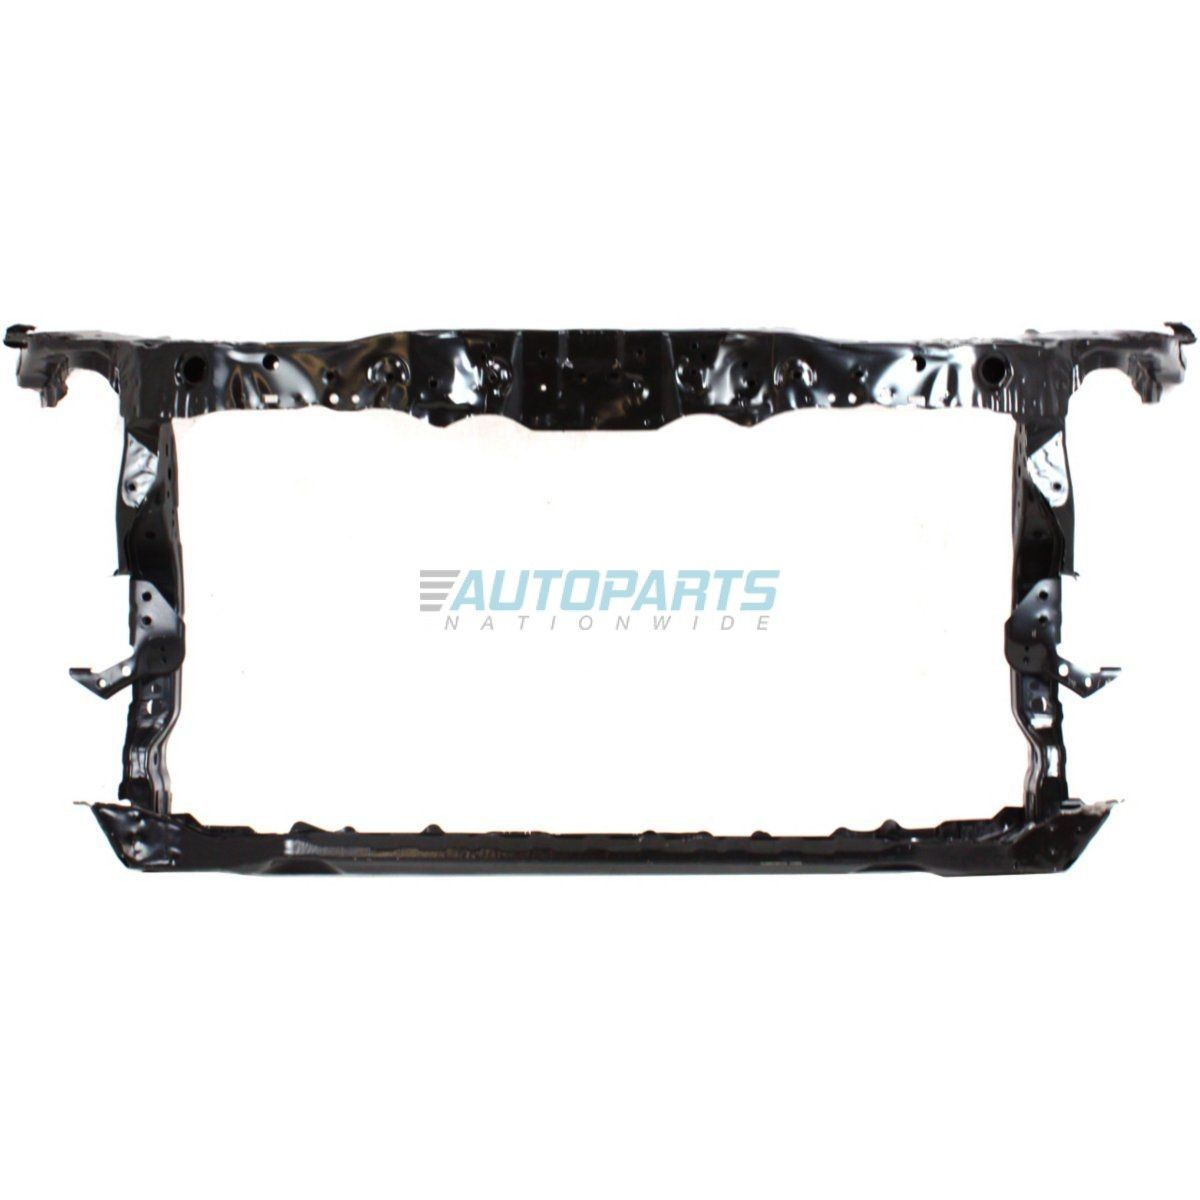 New Radiator Support Assembly Fits 2009-2010 Acura Tsx